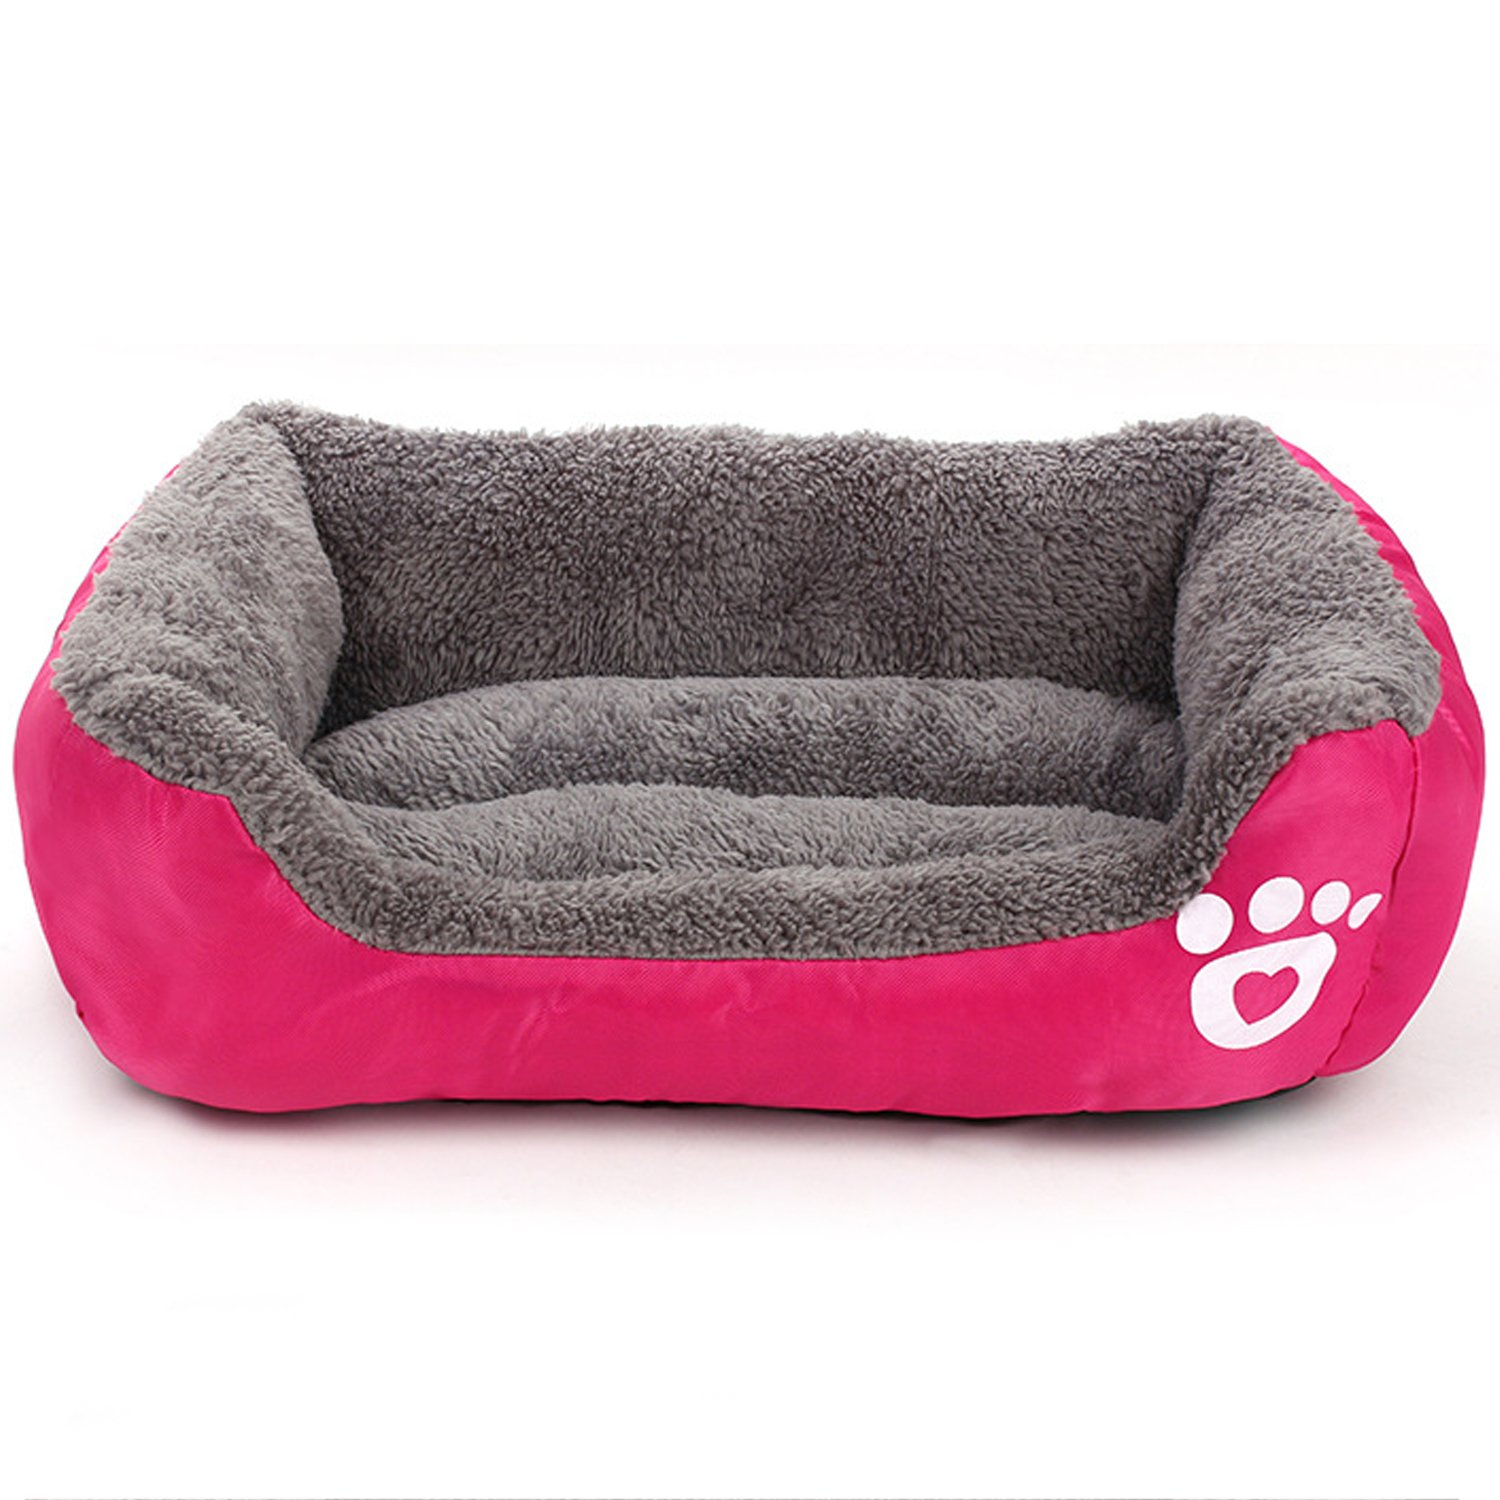 pink Red L pink Red L GIZEE Soft Pet Bed Dog Mattress Kennel Nest Warm Dogs Cat Cute Sleeping Bag House Cushion Mat (pink Red)